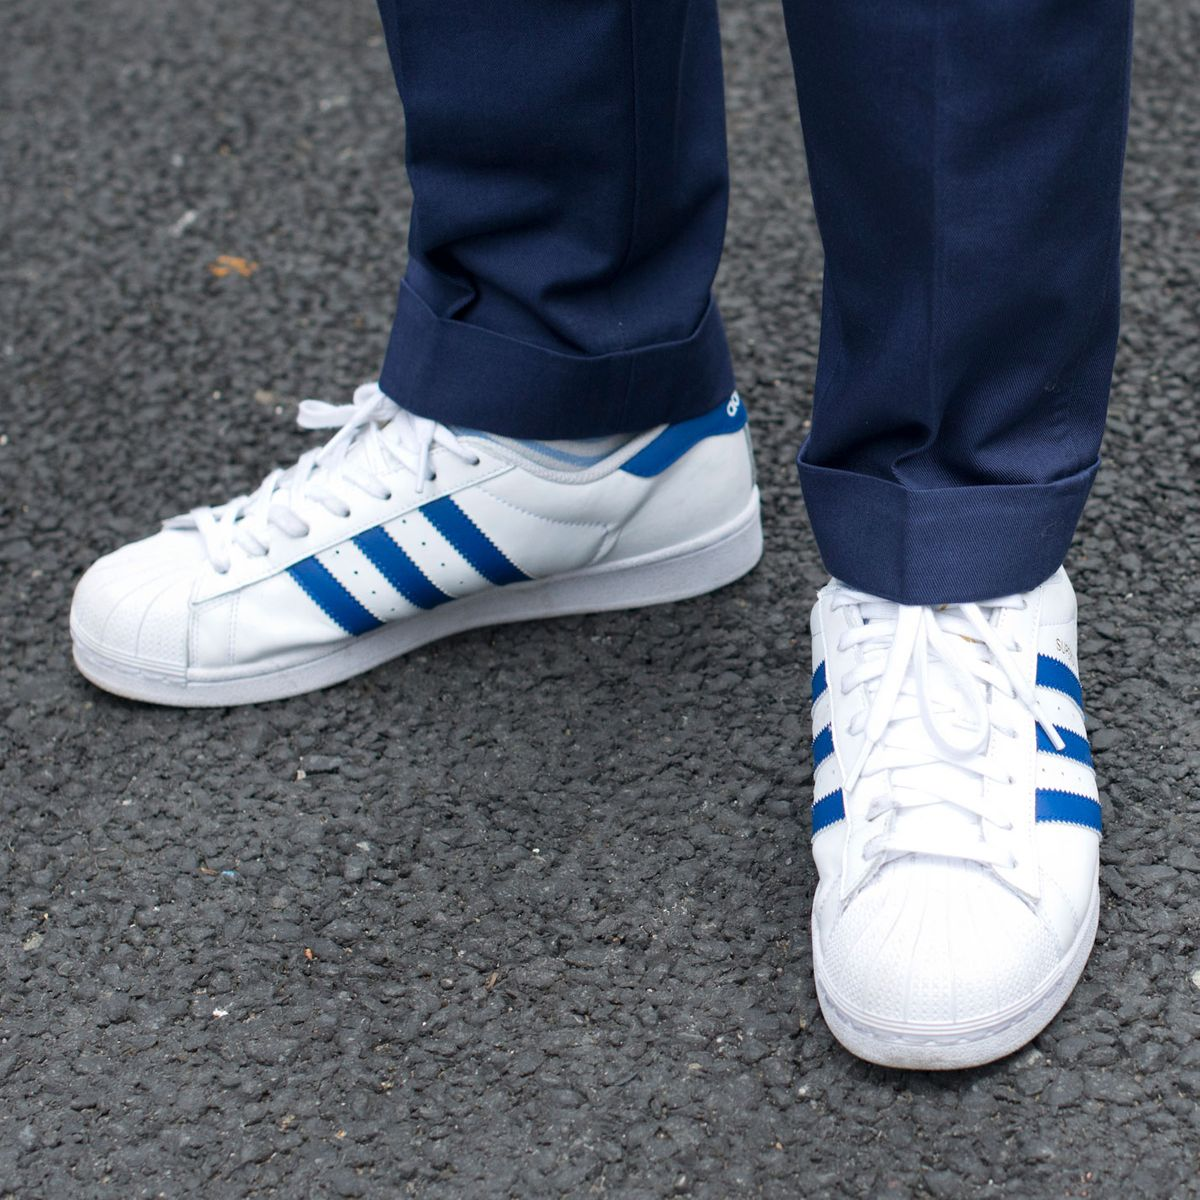 5 Adidas Shoes for Men 2019 | The